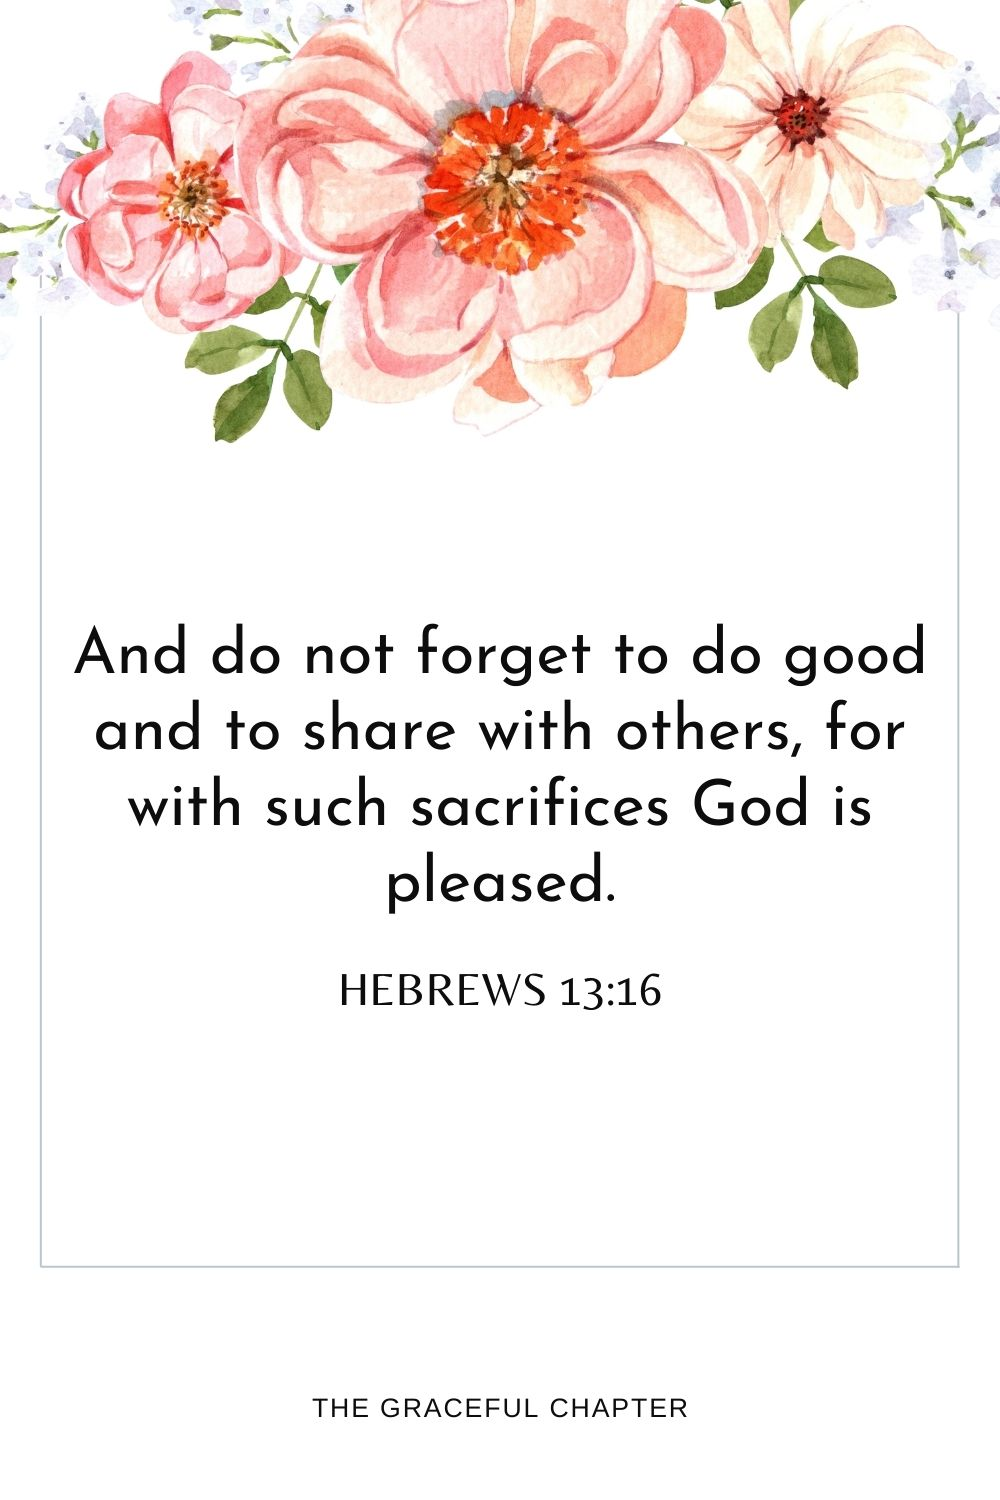 And do not forget to do good and to share with others,for with such sacrificesGod is pleased. Hebrews 13:16